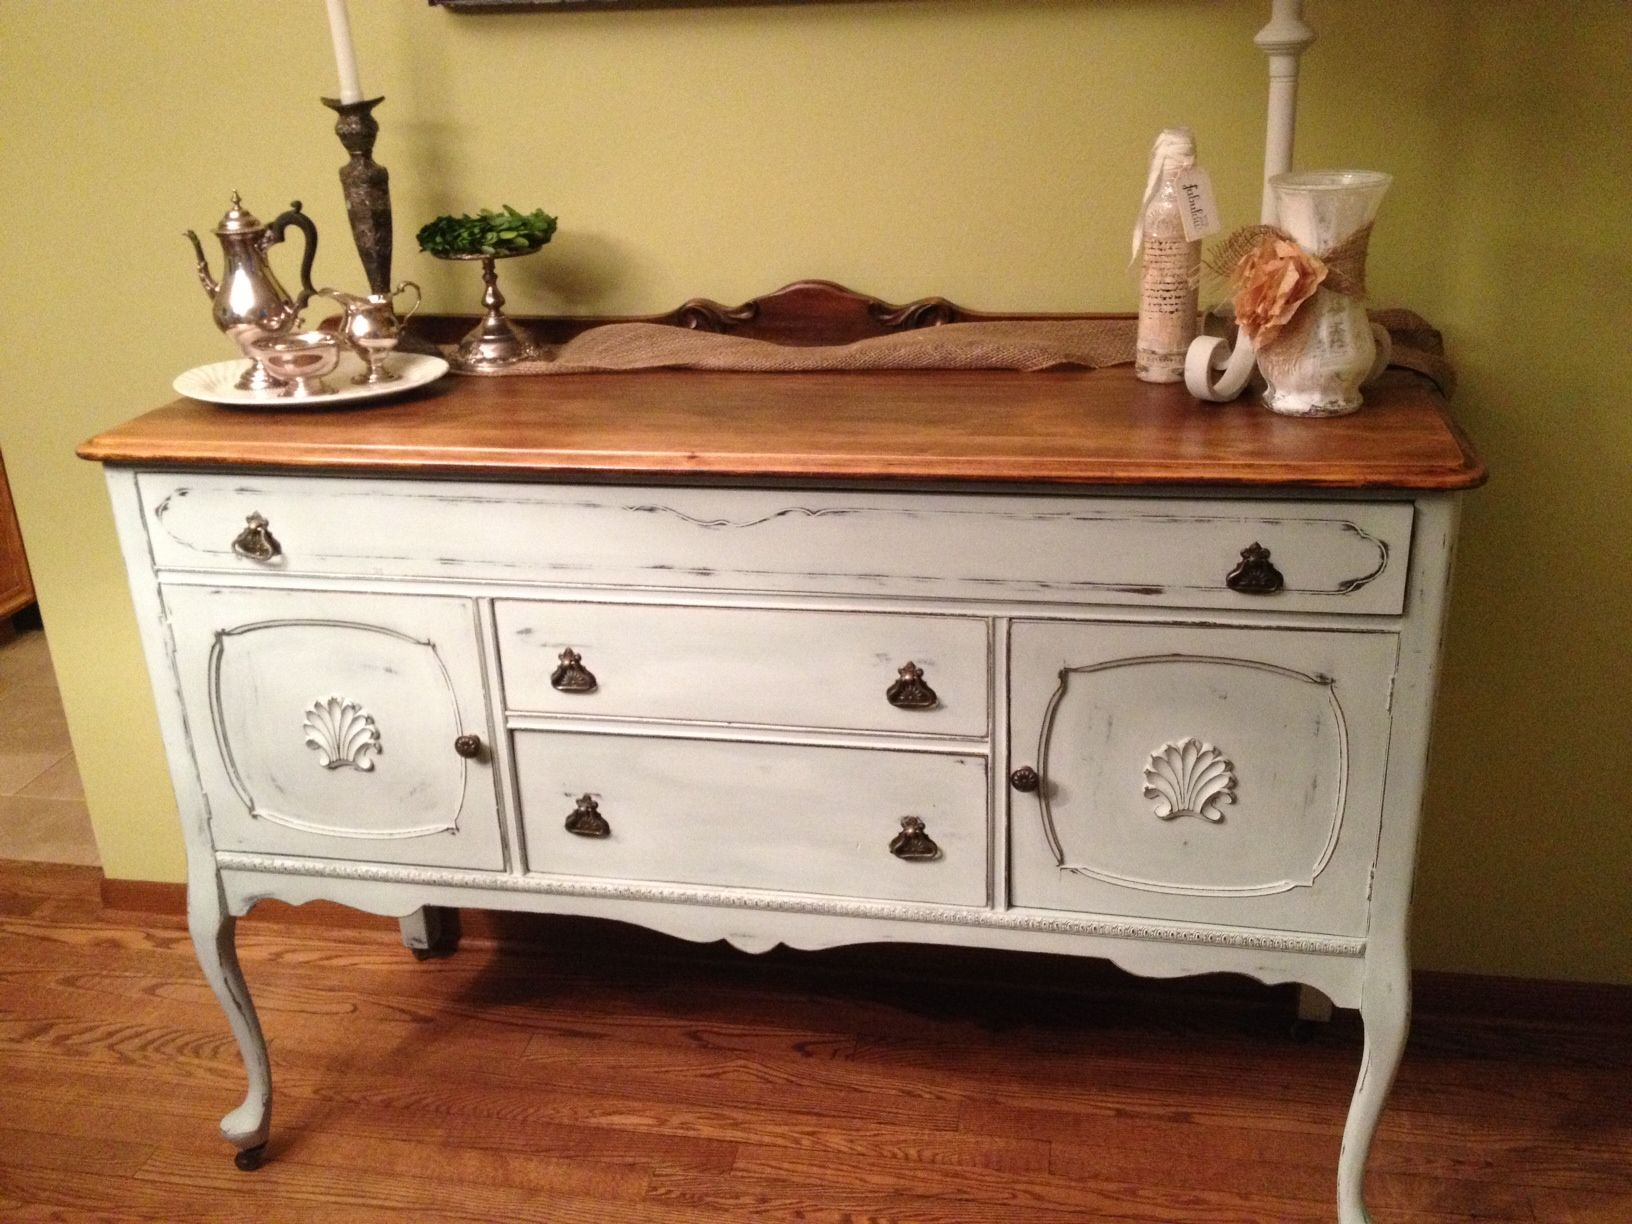 Antique buffet table furniture - Cute Antique Buffet Painted With A Mixture Of Annie Sloan Old White Duck Egg Blue